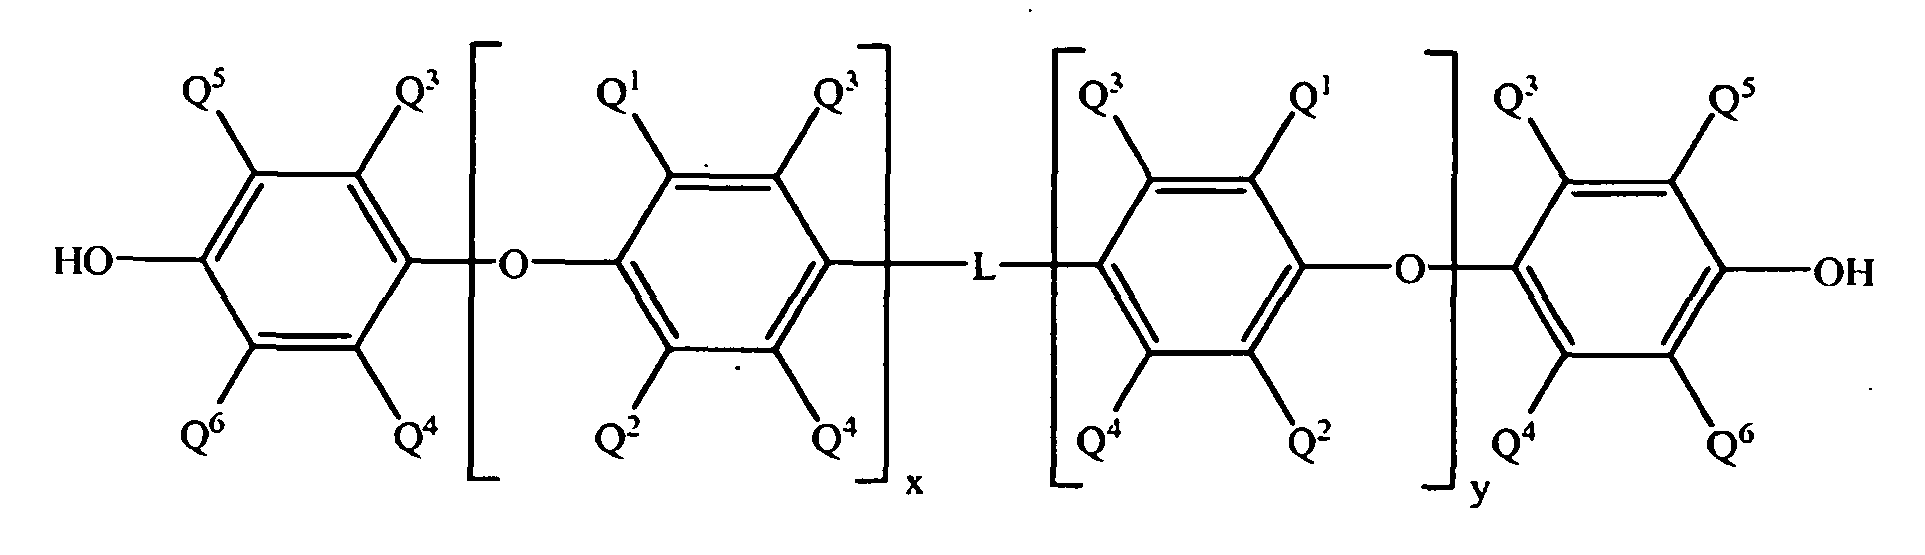 POLY(ARYLENE ETHER) COMPOSITIONS - Patent 2076559